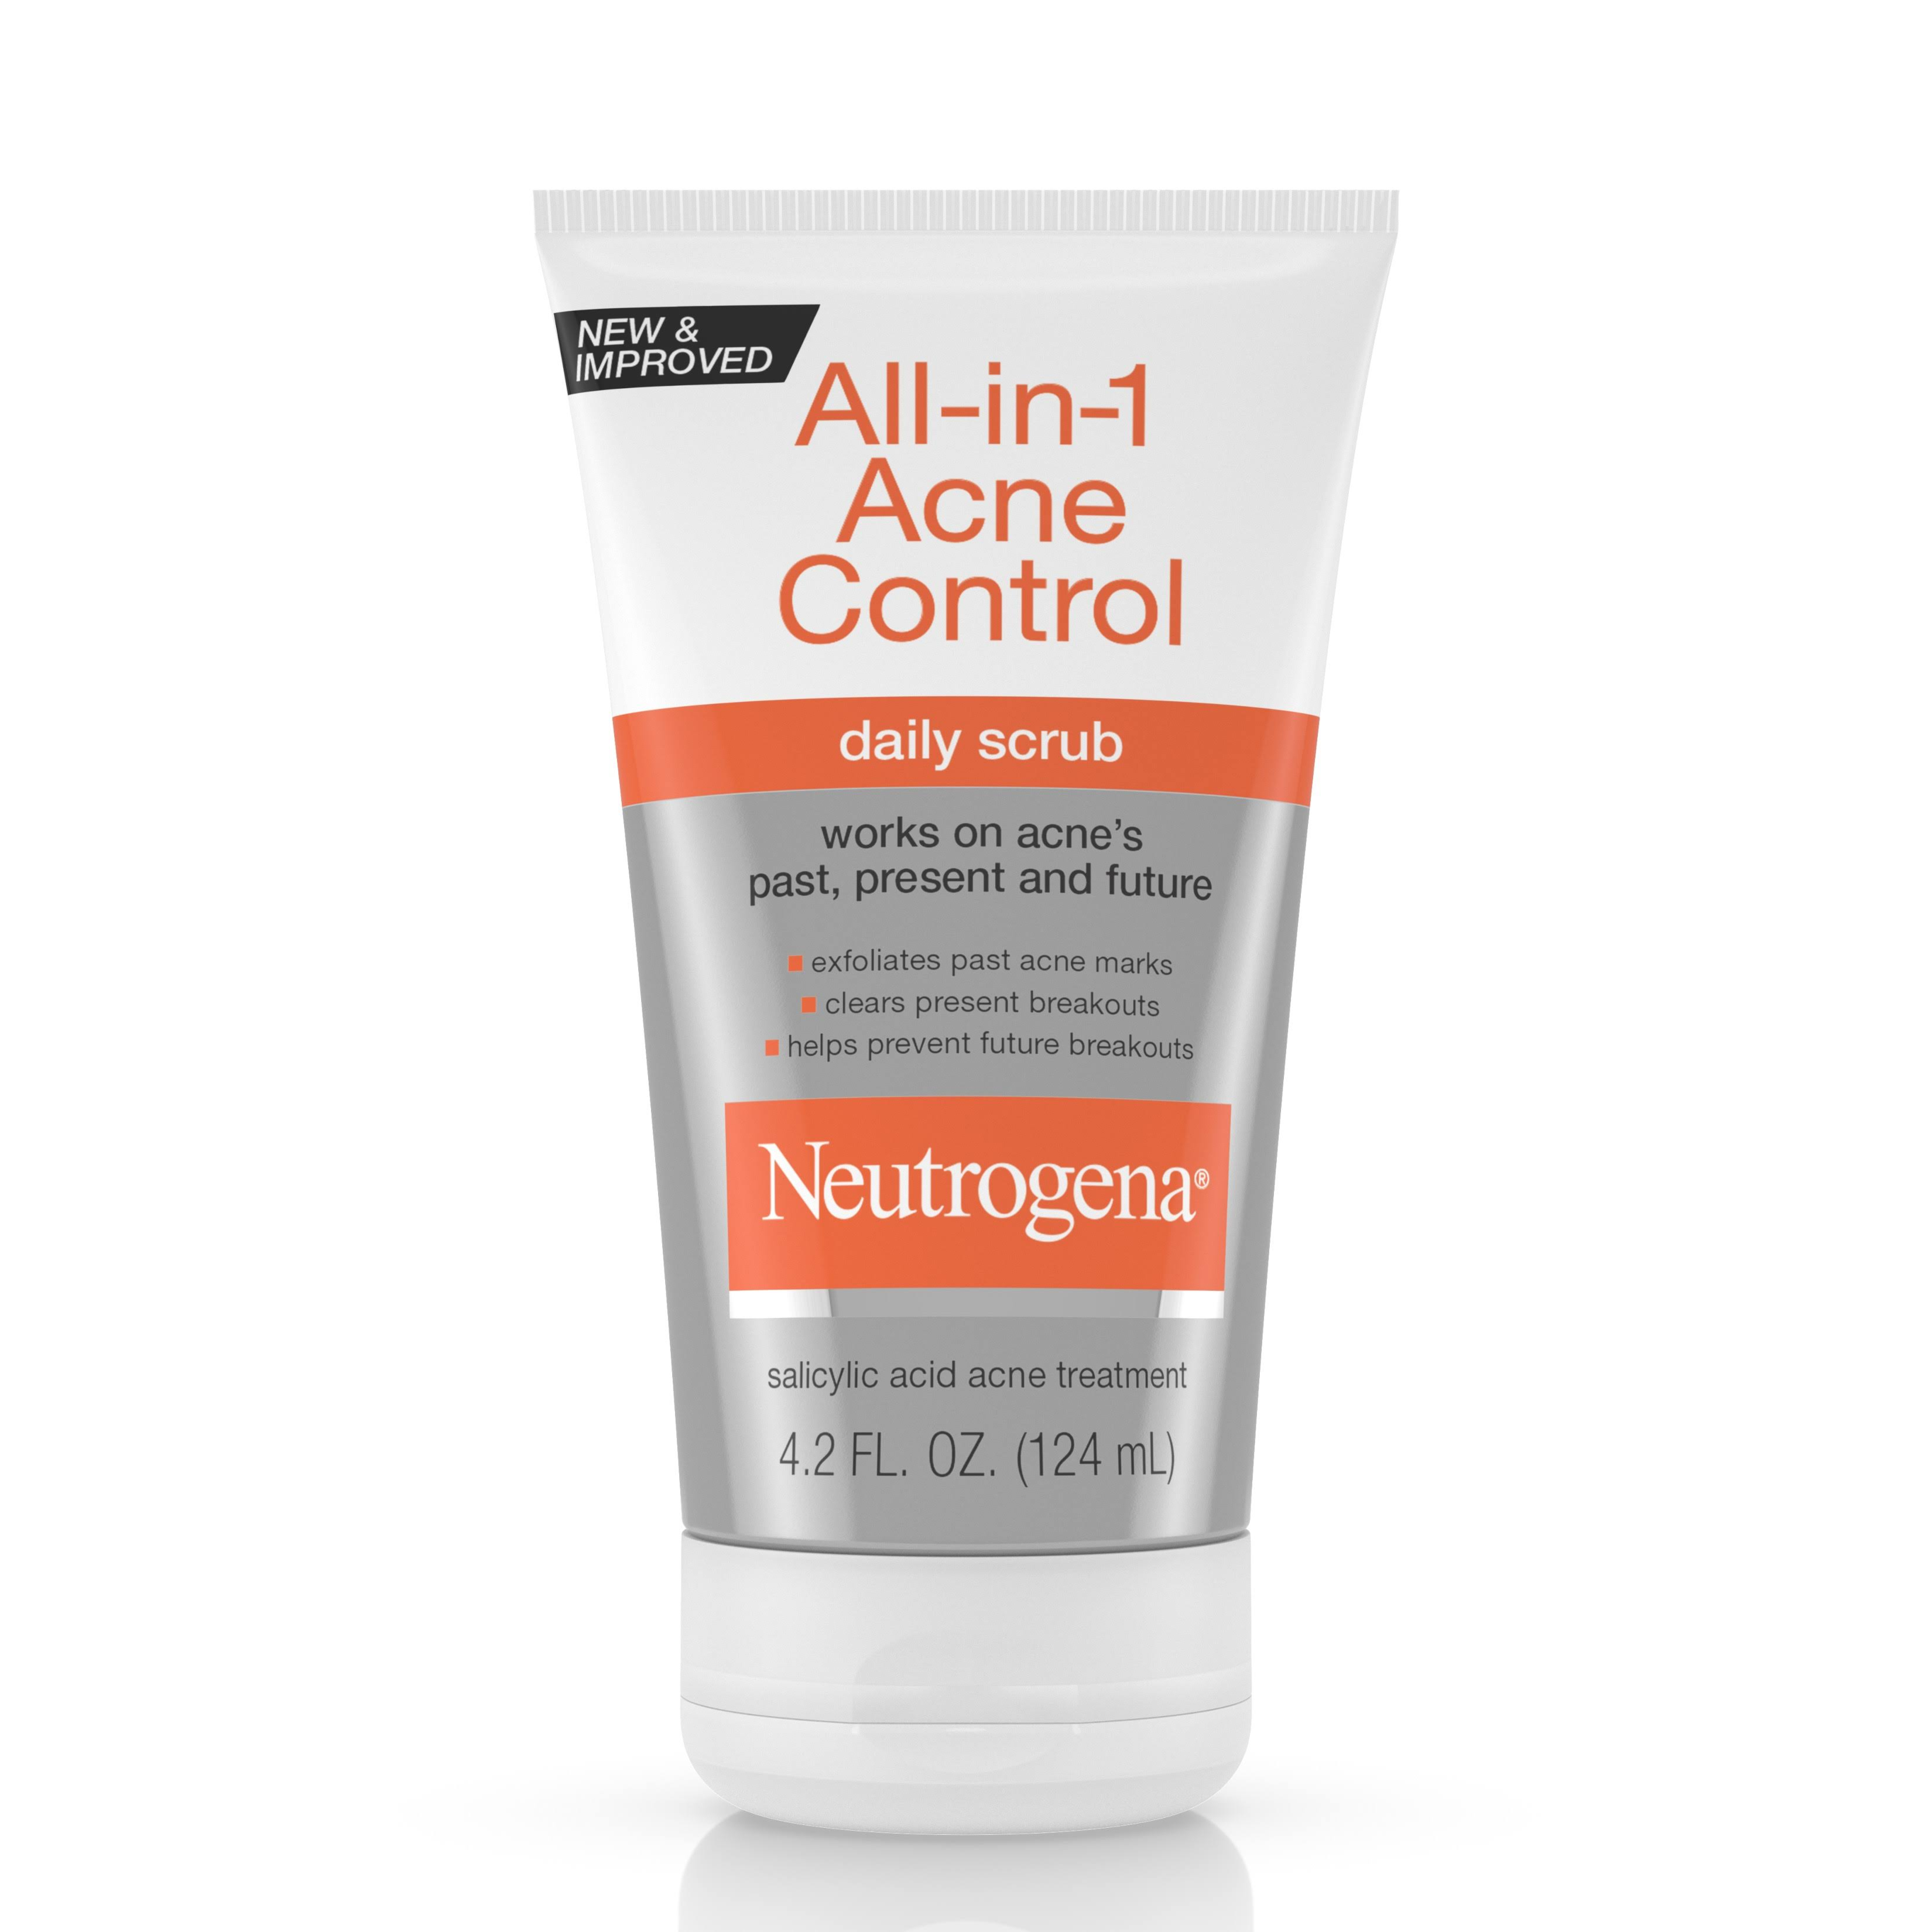 Neutrogena All in 1 Acne Control Daily Scrub - 4.2oz